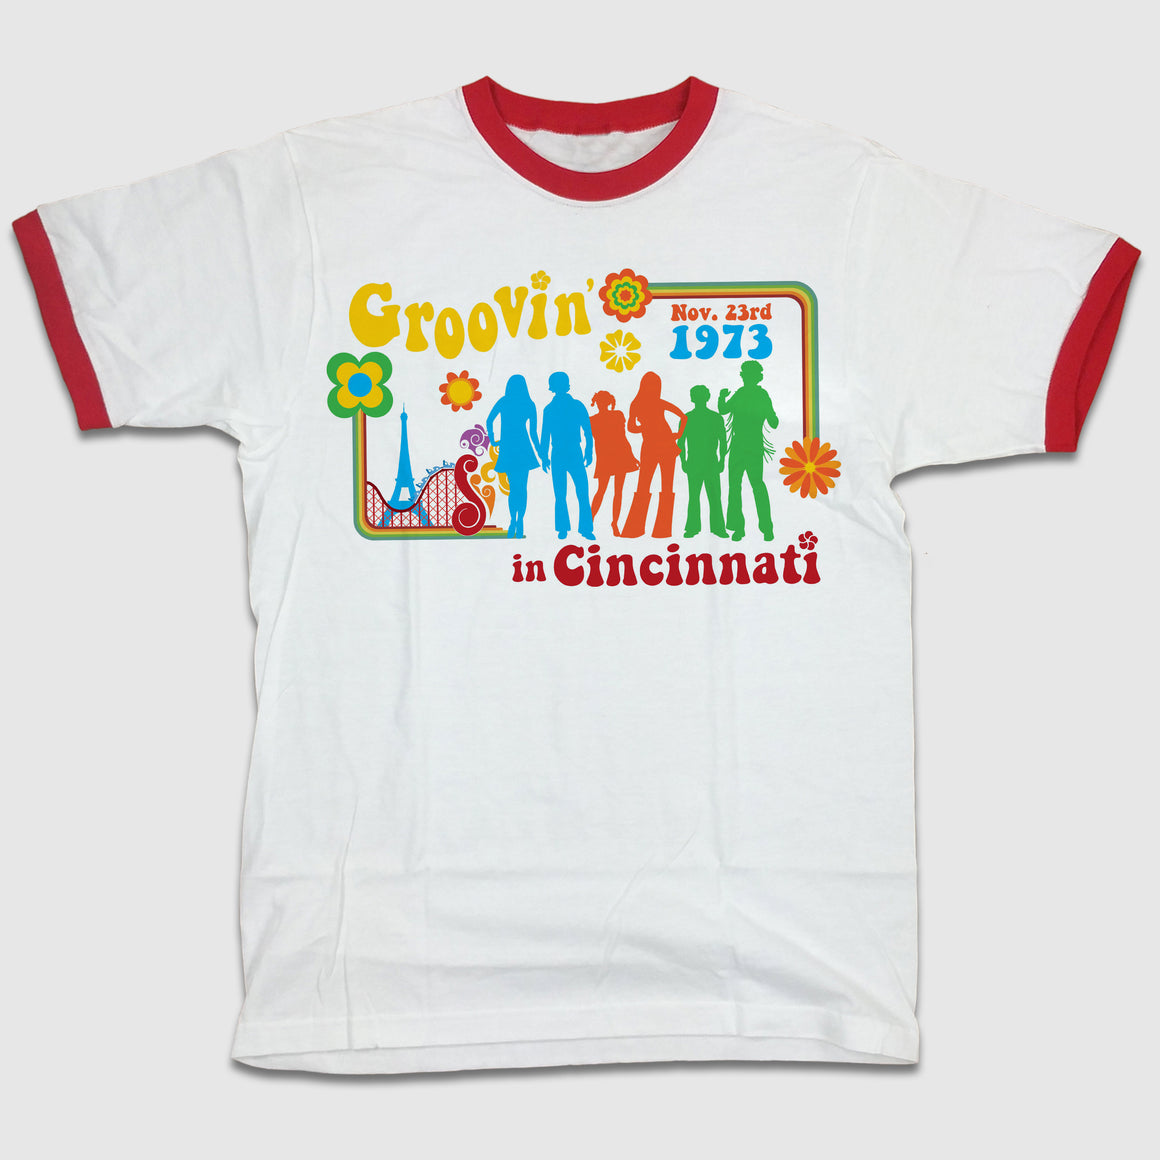 Groovin' In Cincinnati - Cincy Shirts